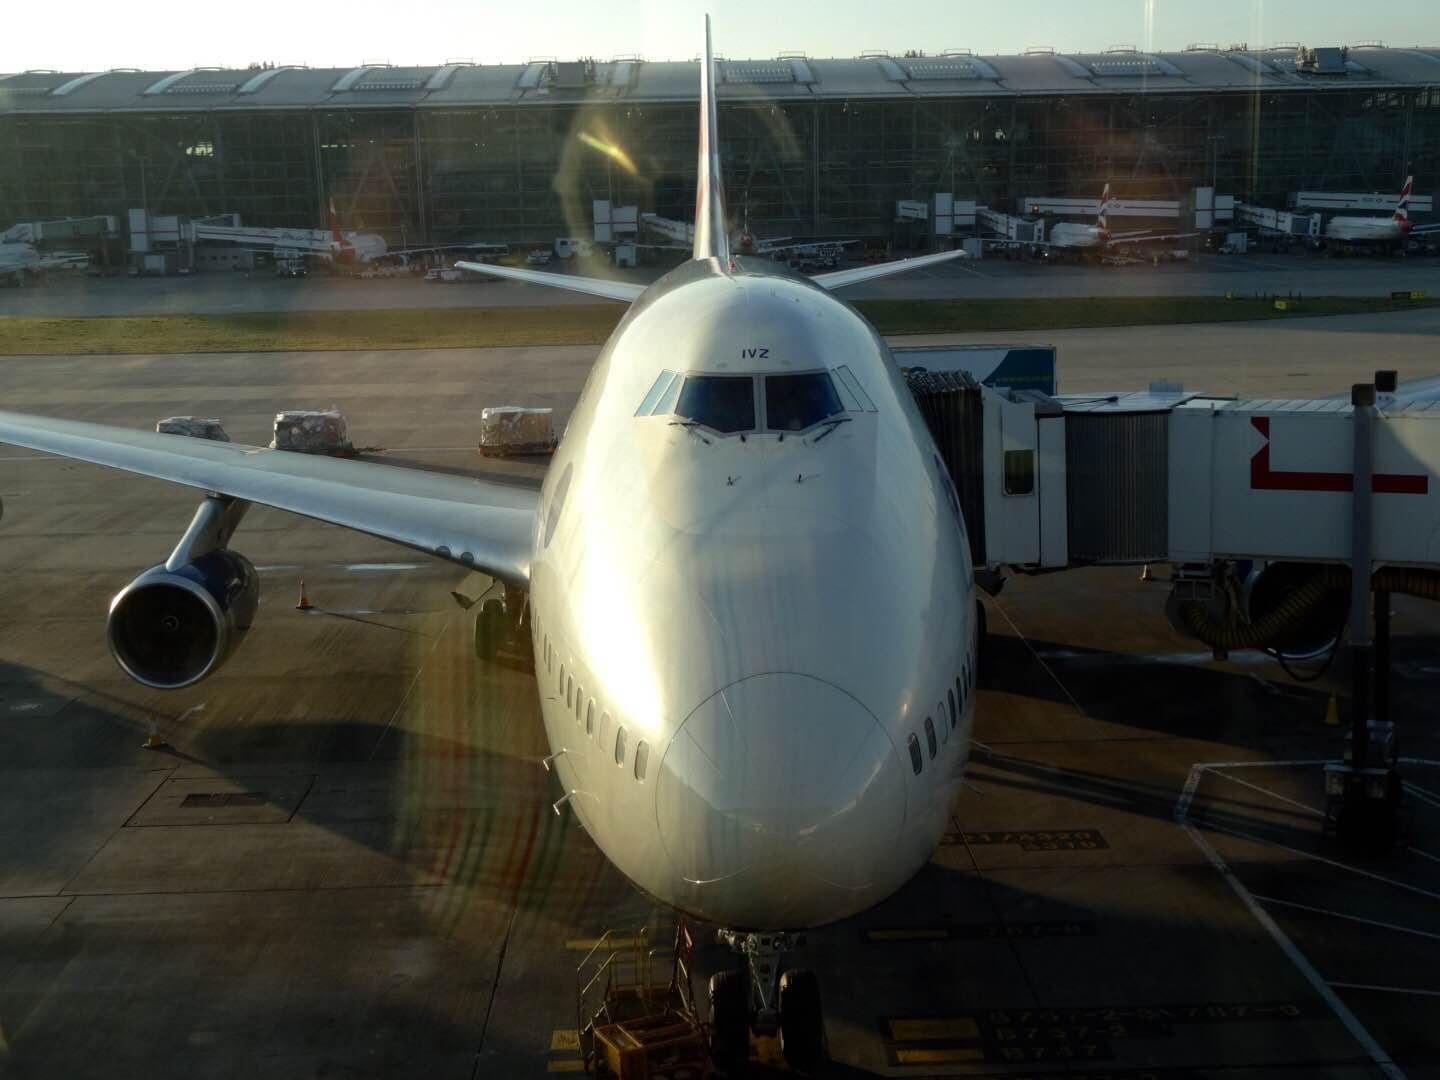 Boeing 787 dreamliner en Aeropuerto de Londres - Heathrow